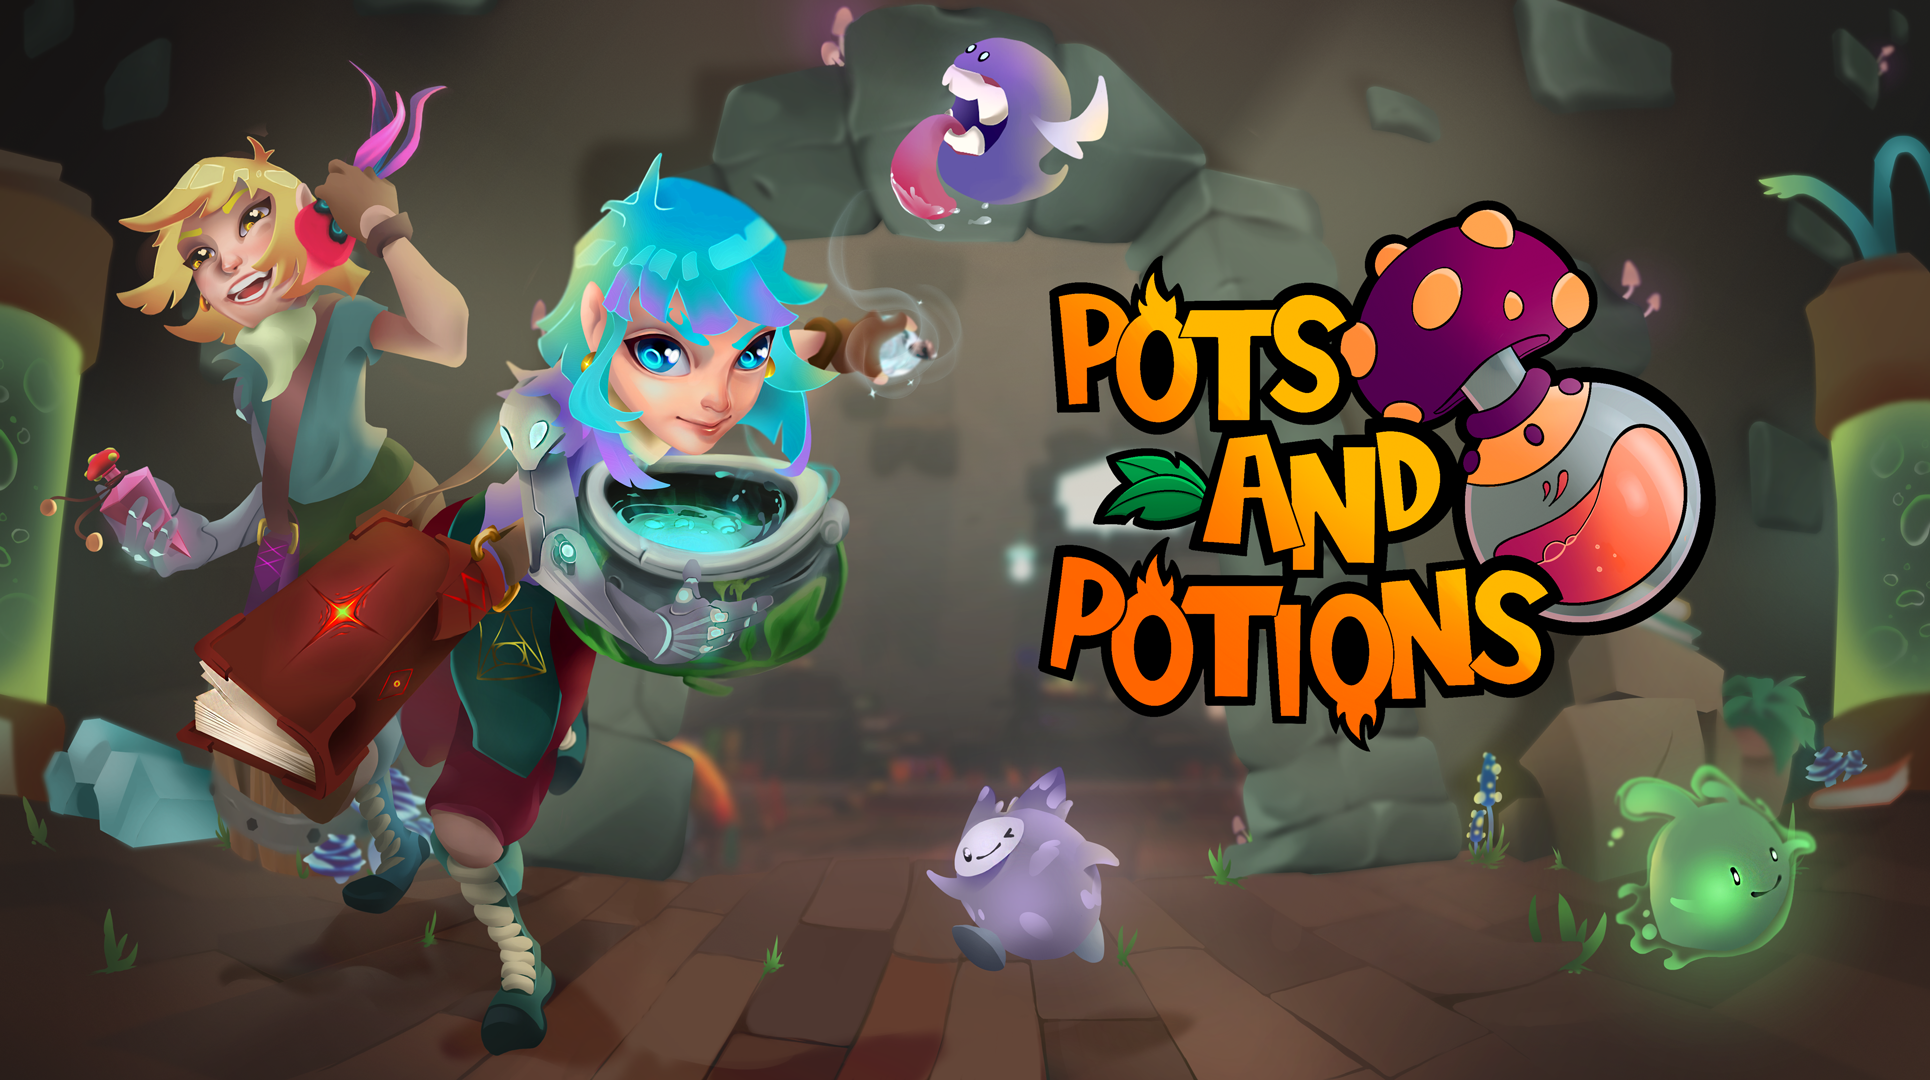 Pots and Potions